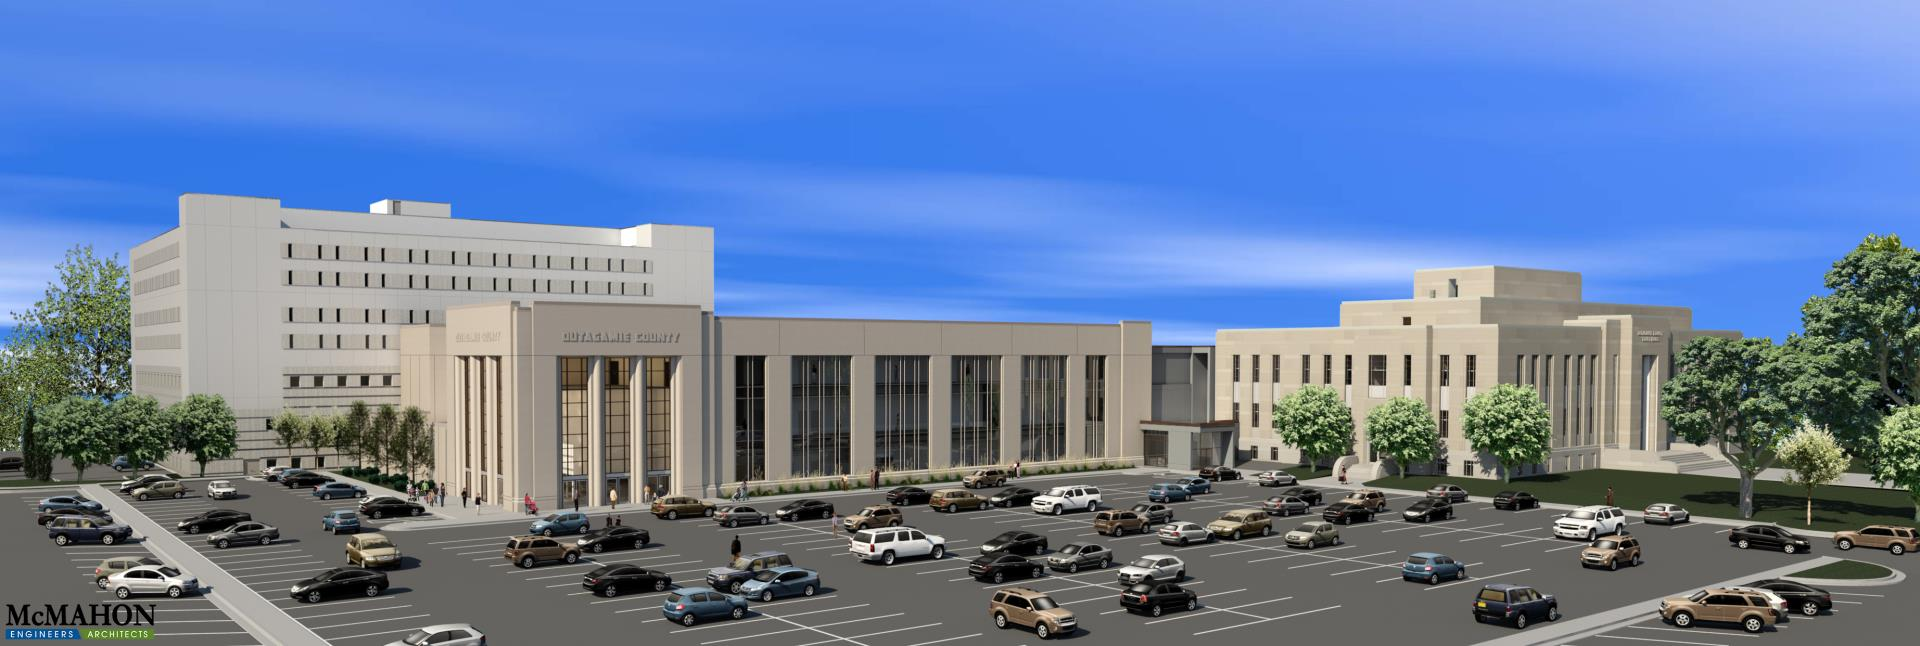 Outagamie County Government Center | Facility Directory | Outagamie